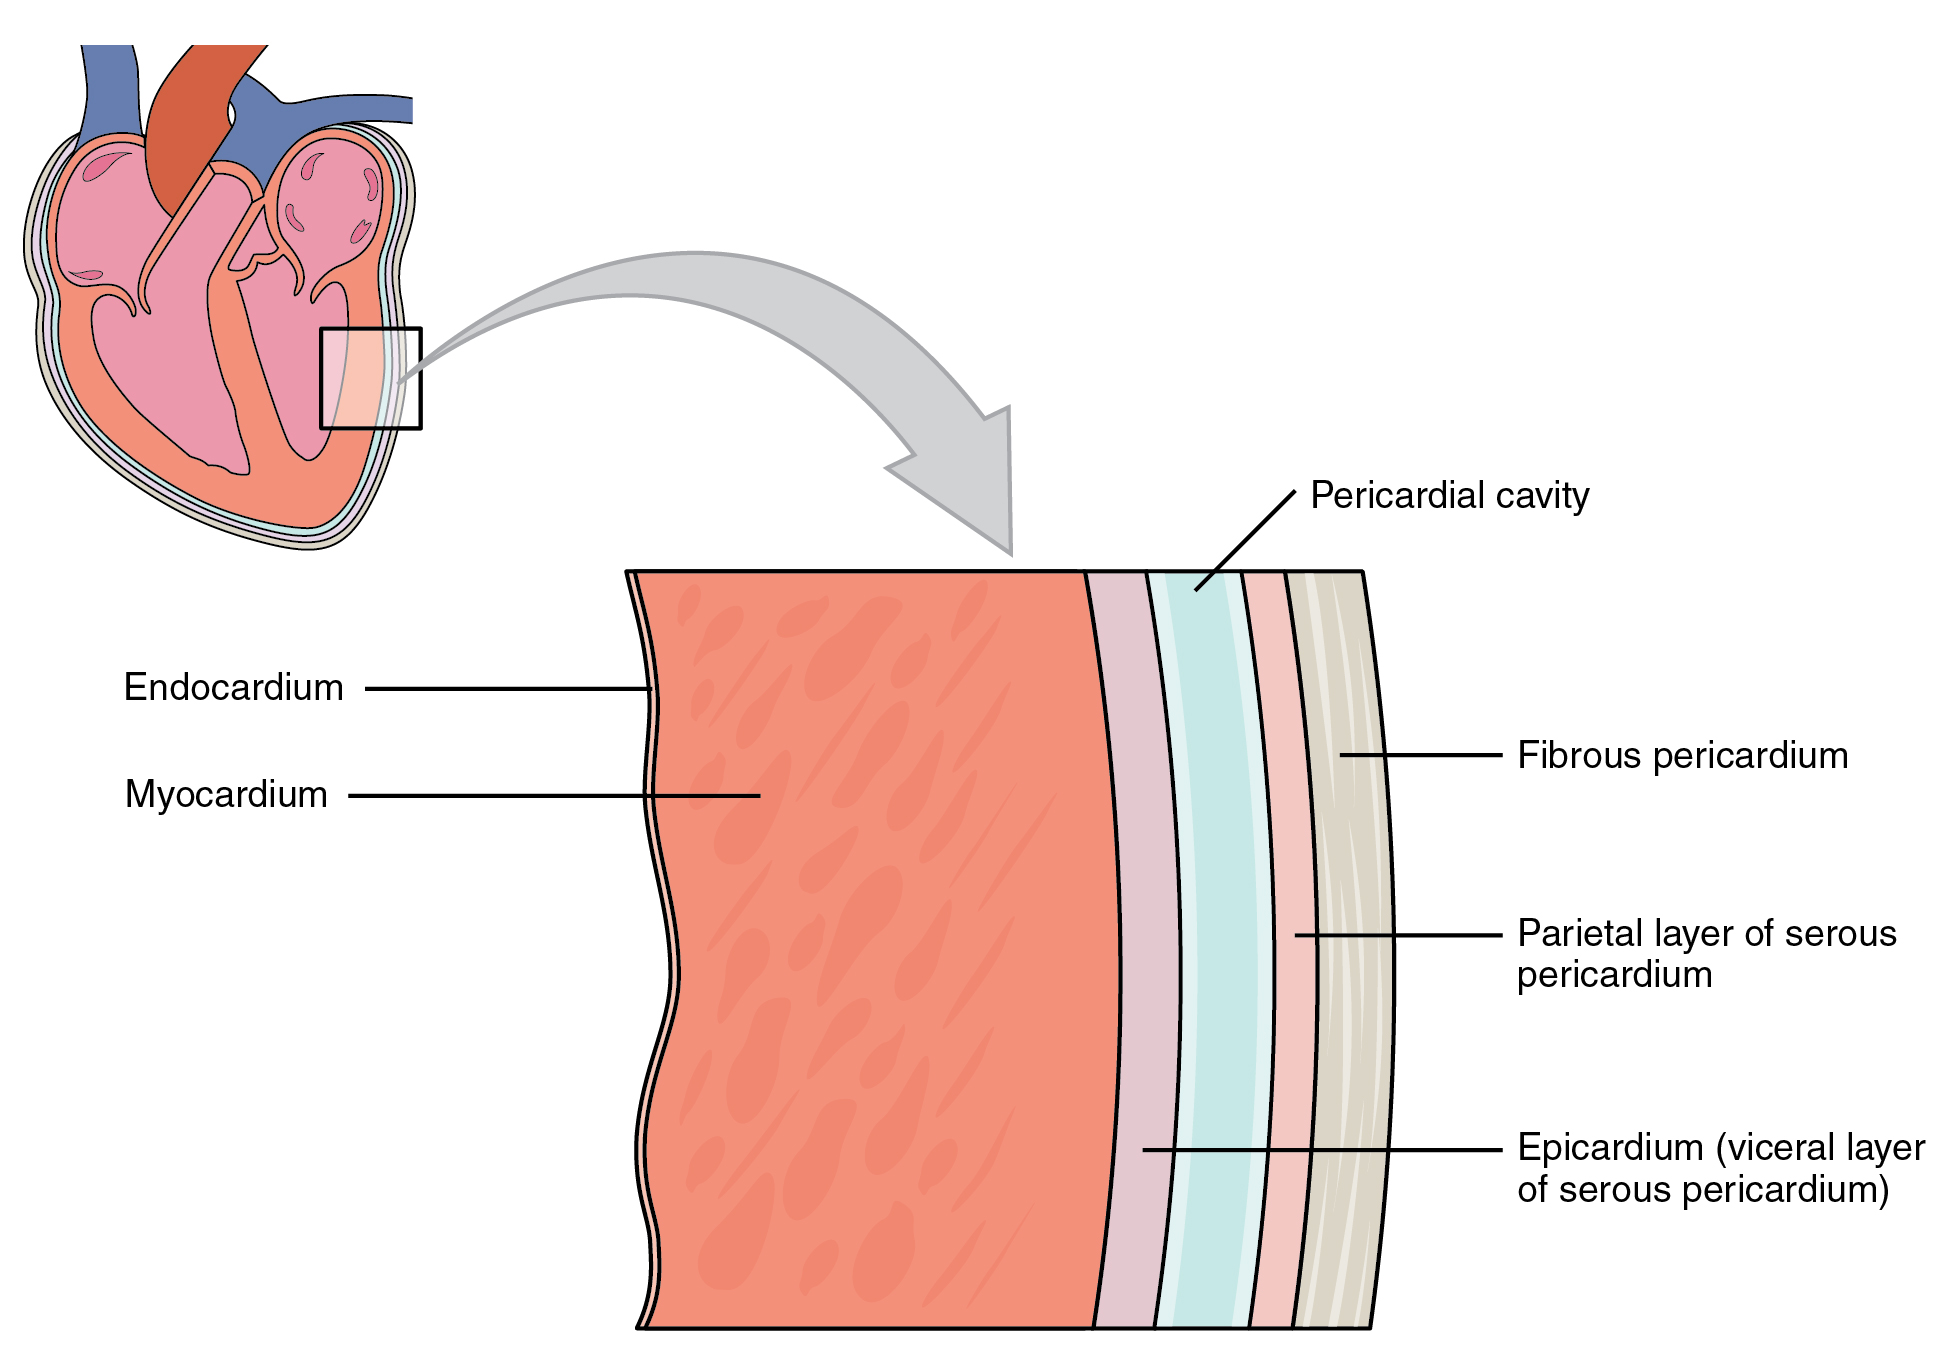 191 Heart Anatomy And Physiology Electric Car Sankey Diagram This Image Shows A Magnified View Of The Structure Wall